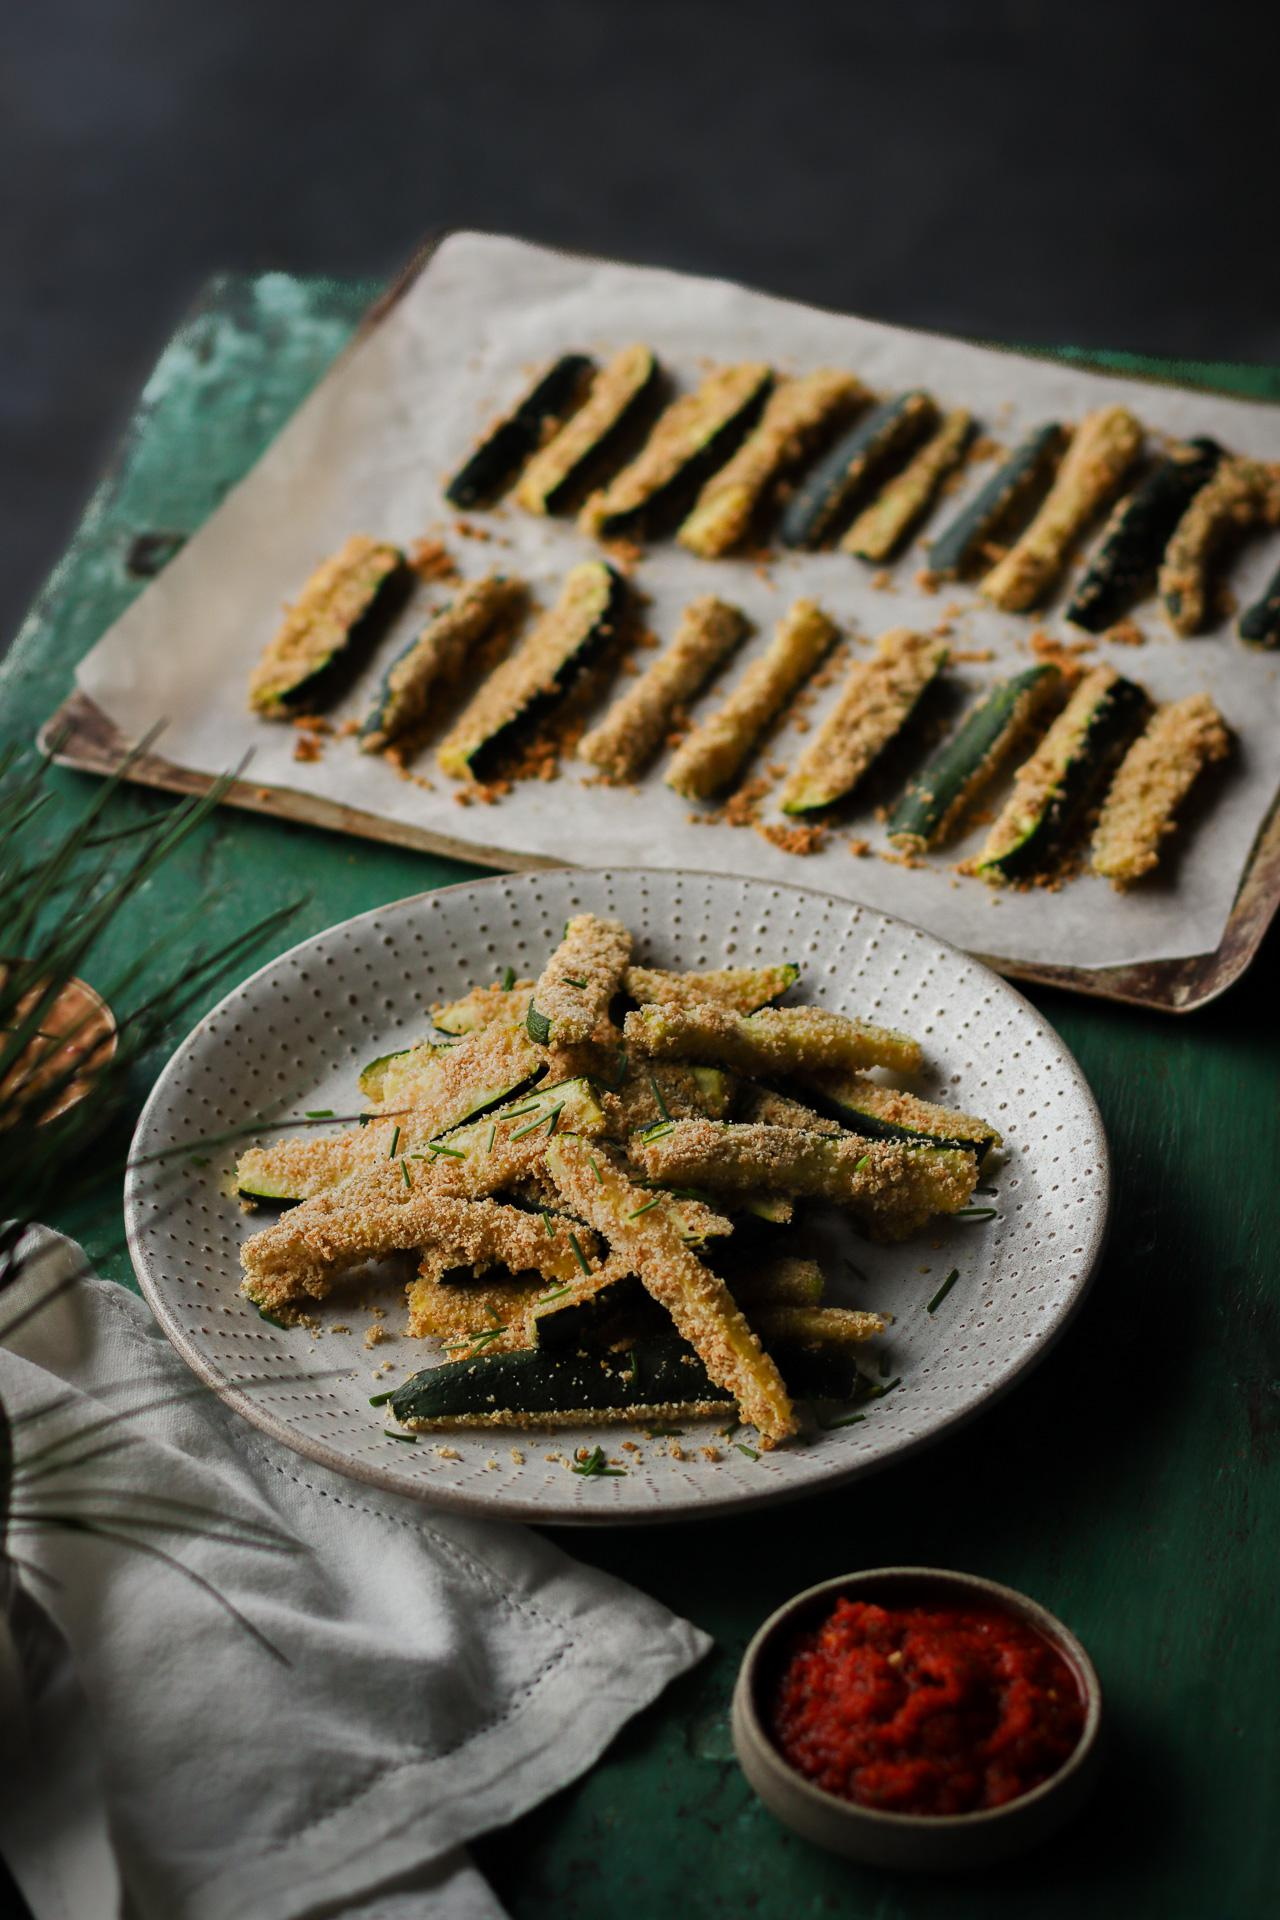 Main image of Baked Zucchini Fries with Two Dips